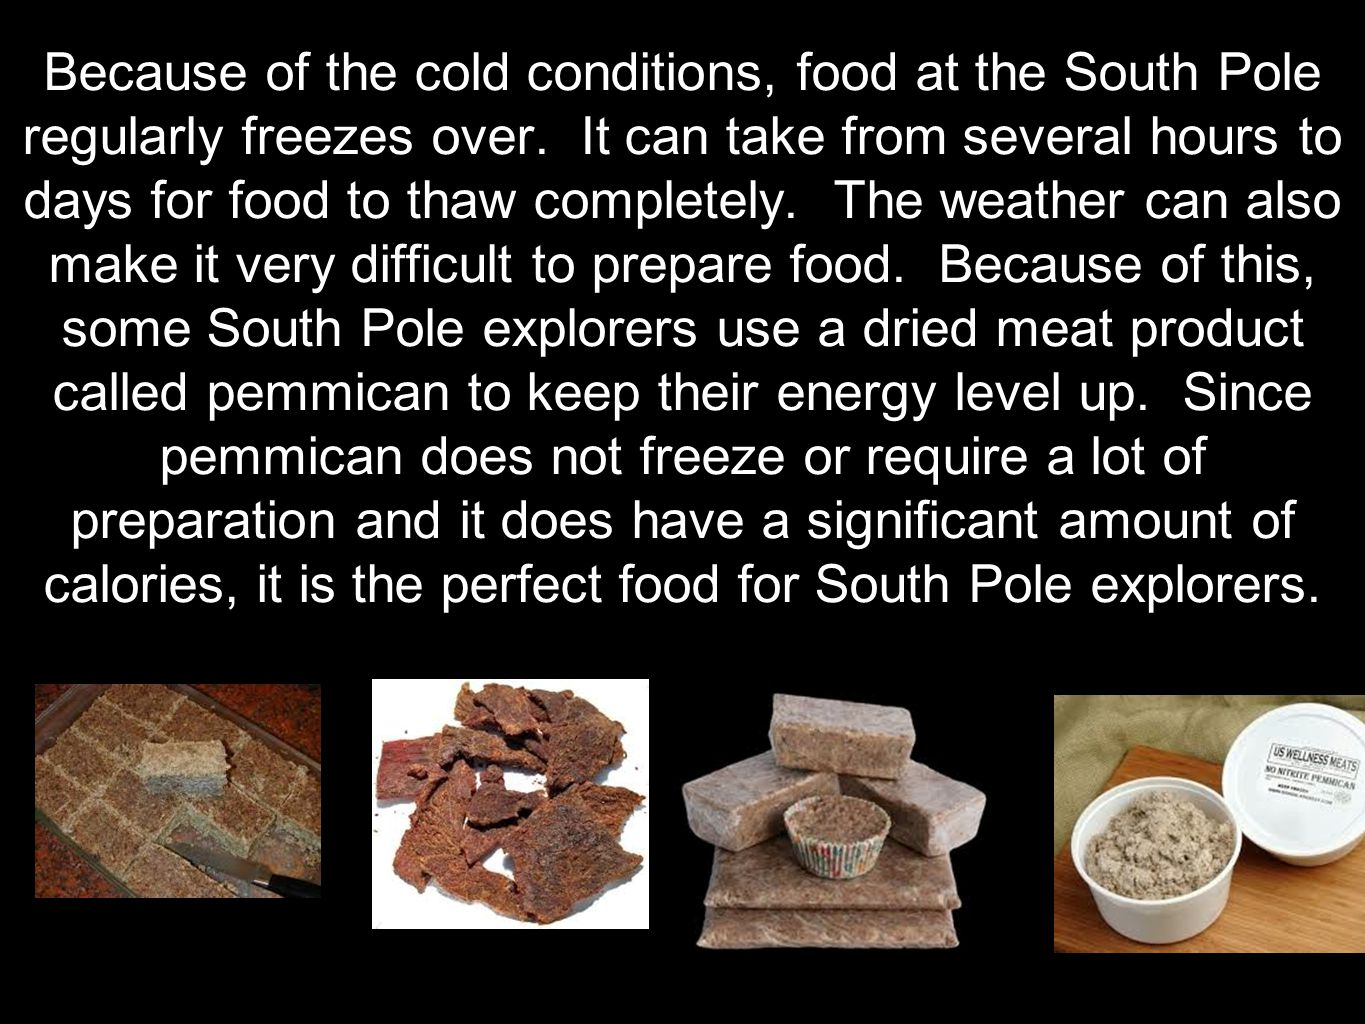 Because of the cold conditions, food at the South Pole regularly freezes over.